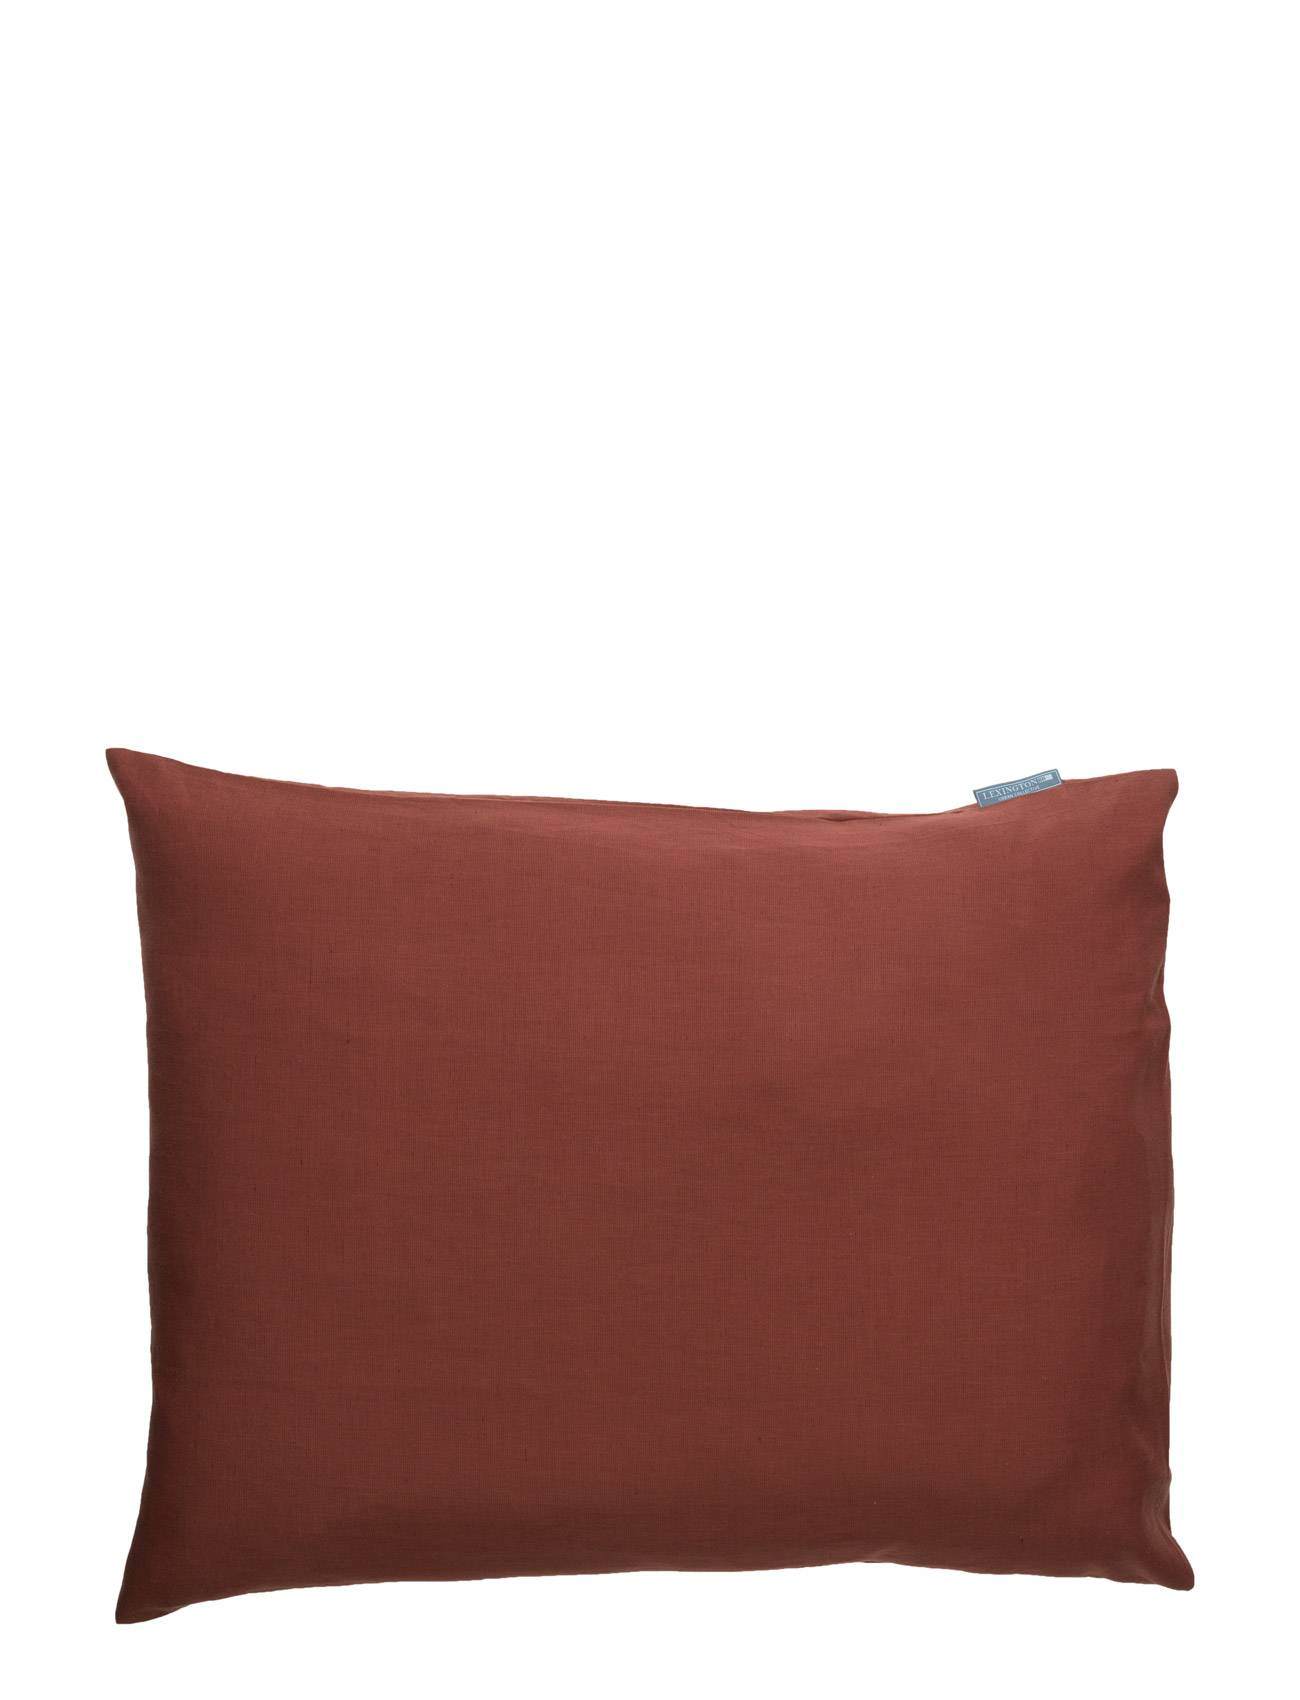 Lexington Company Home Urban Rust Coli Pillowcase